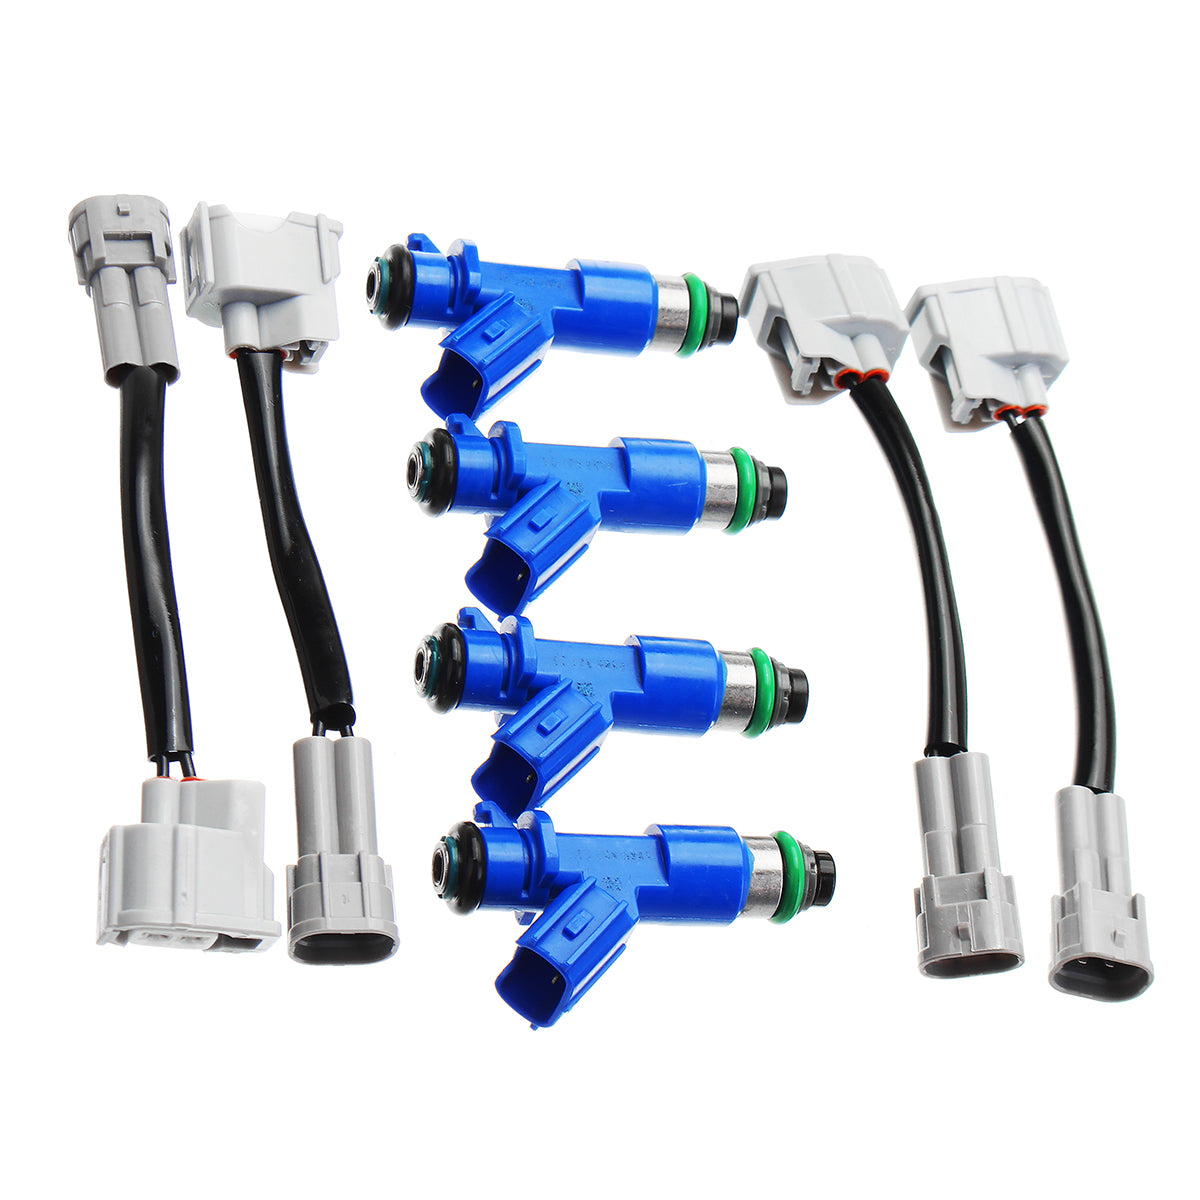 4PCS Fuel Injector Plugs For Honda